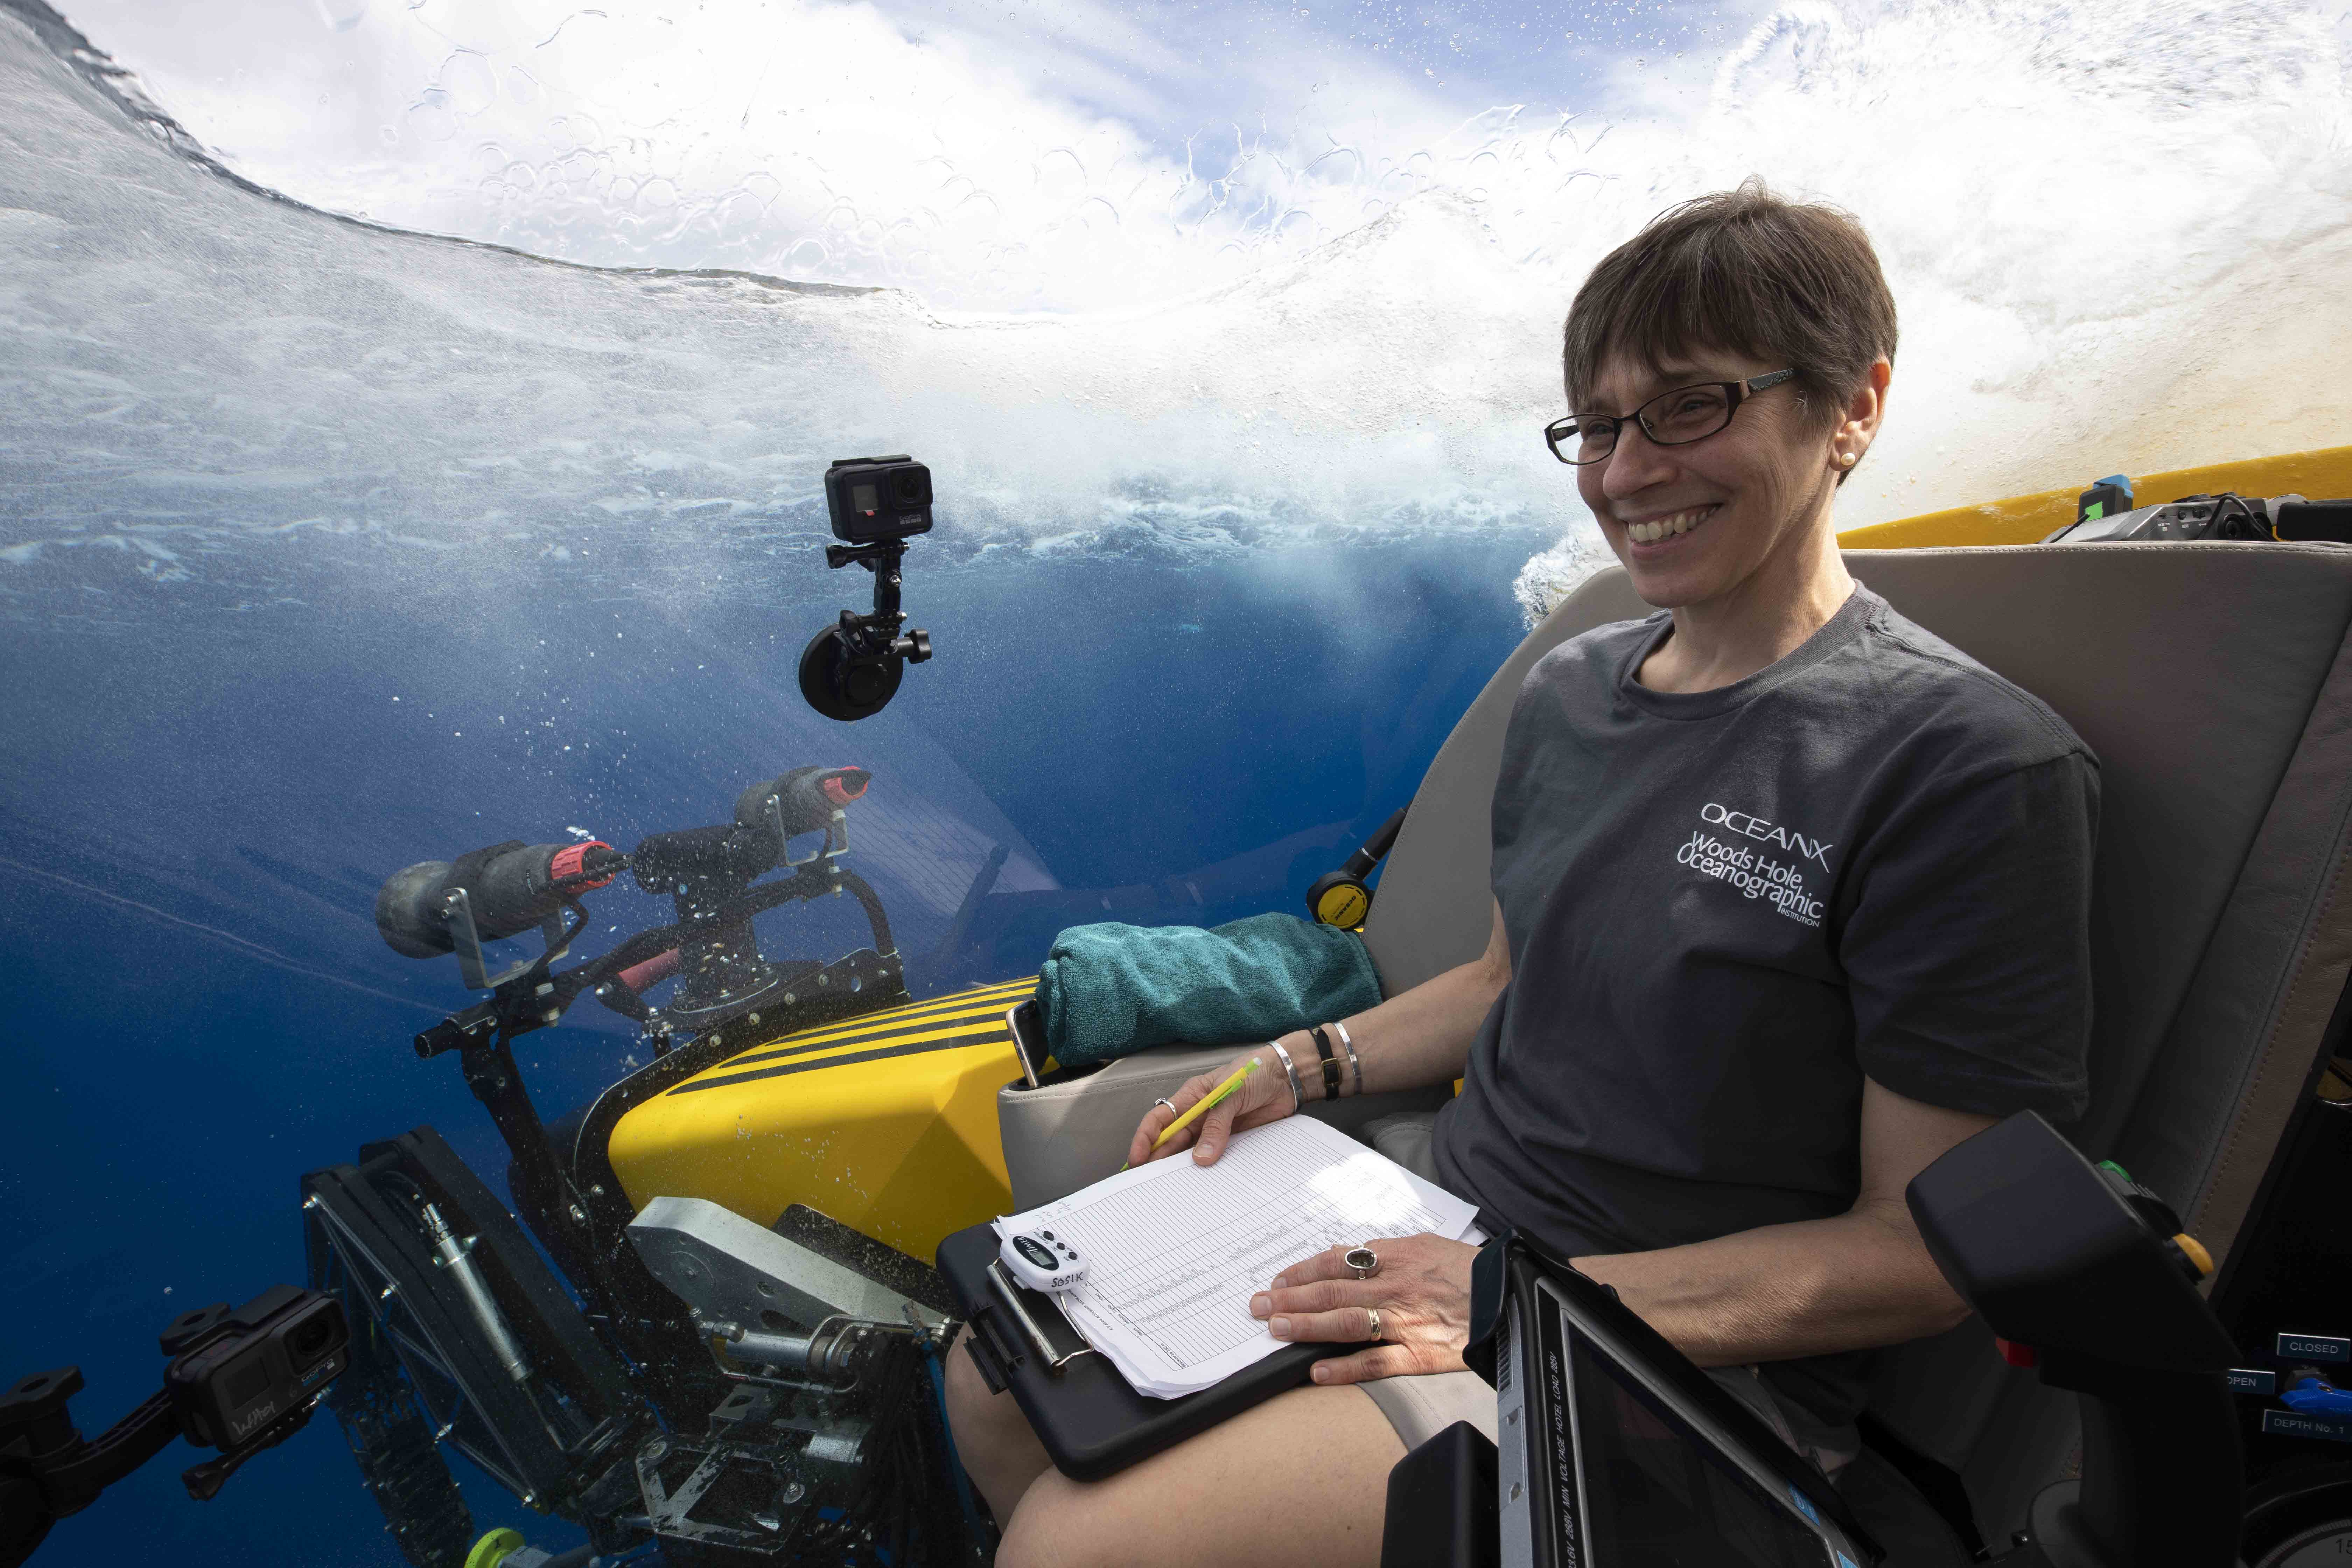 Heidi Sosik enters the ocean in manned submersible